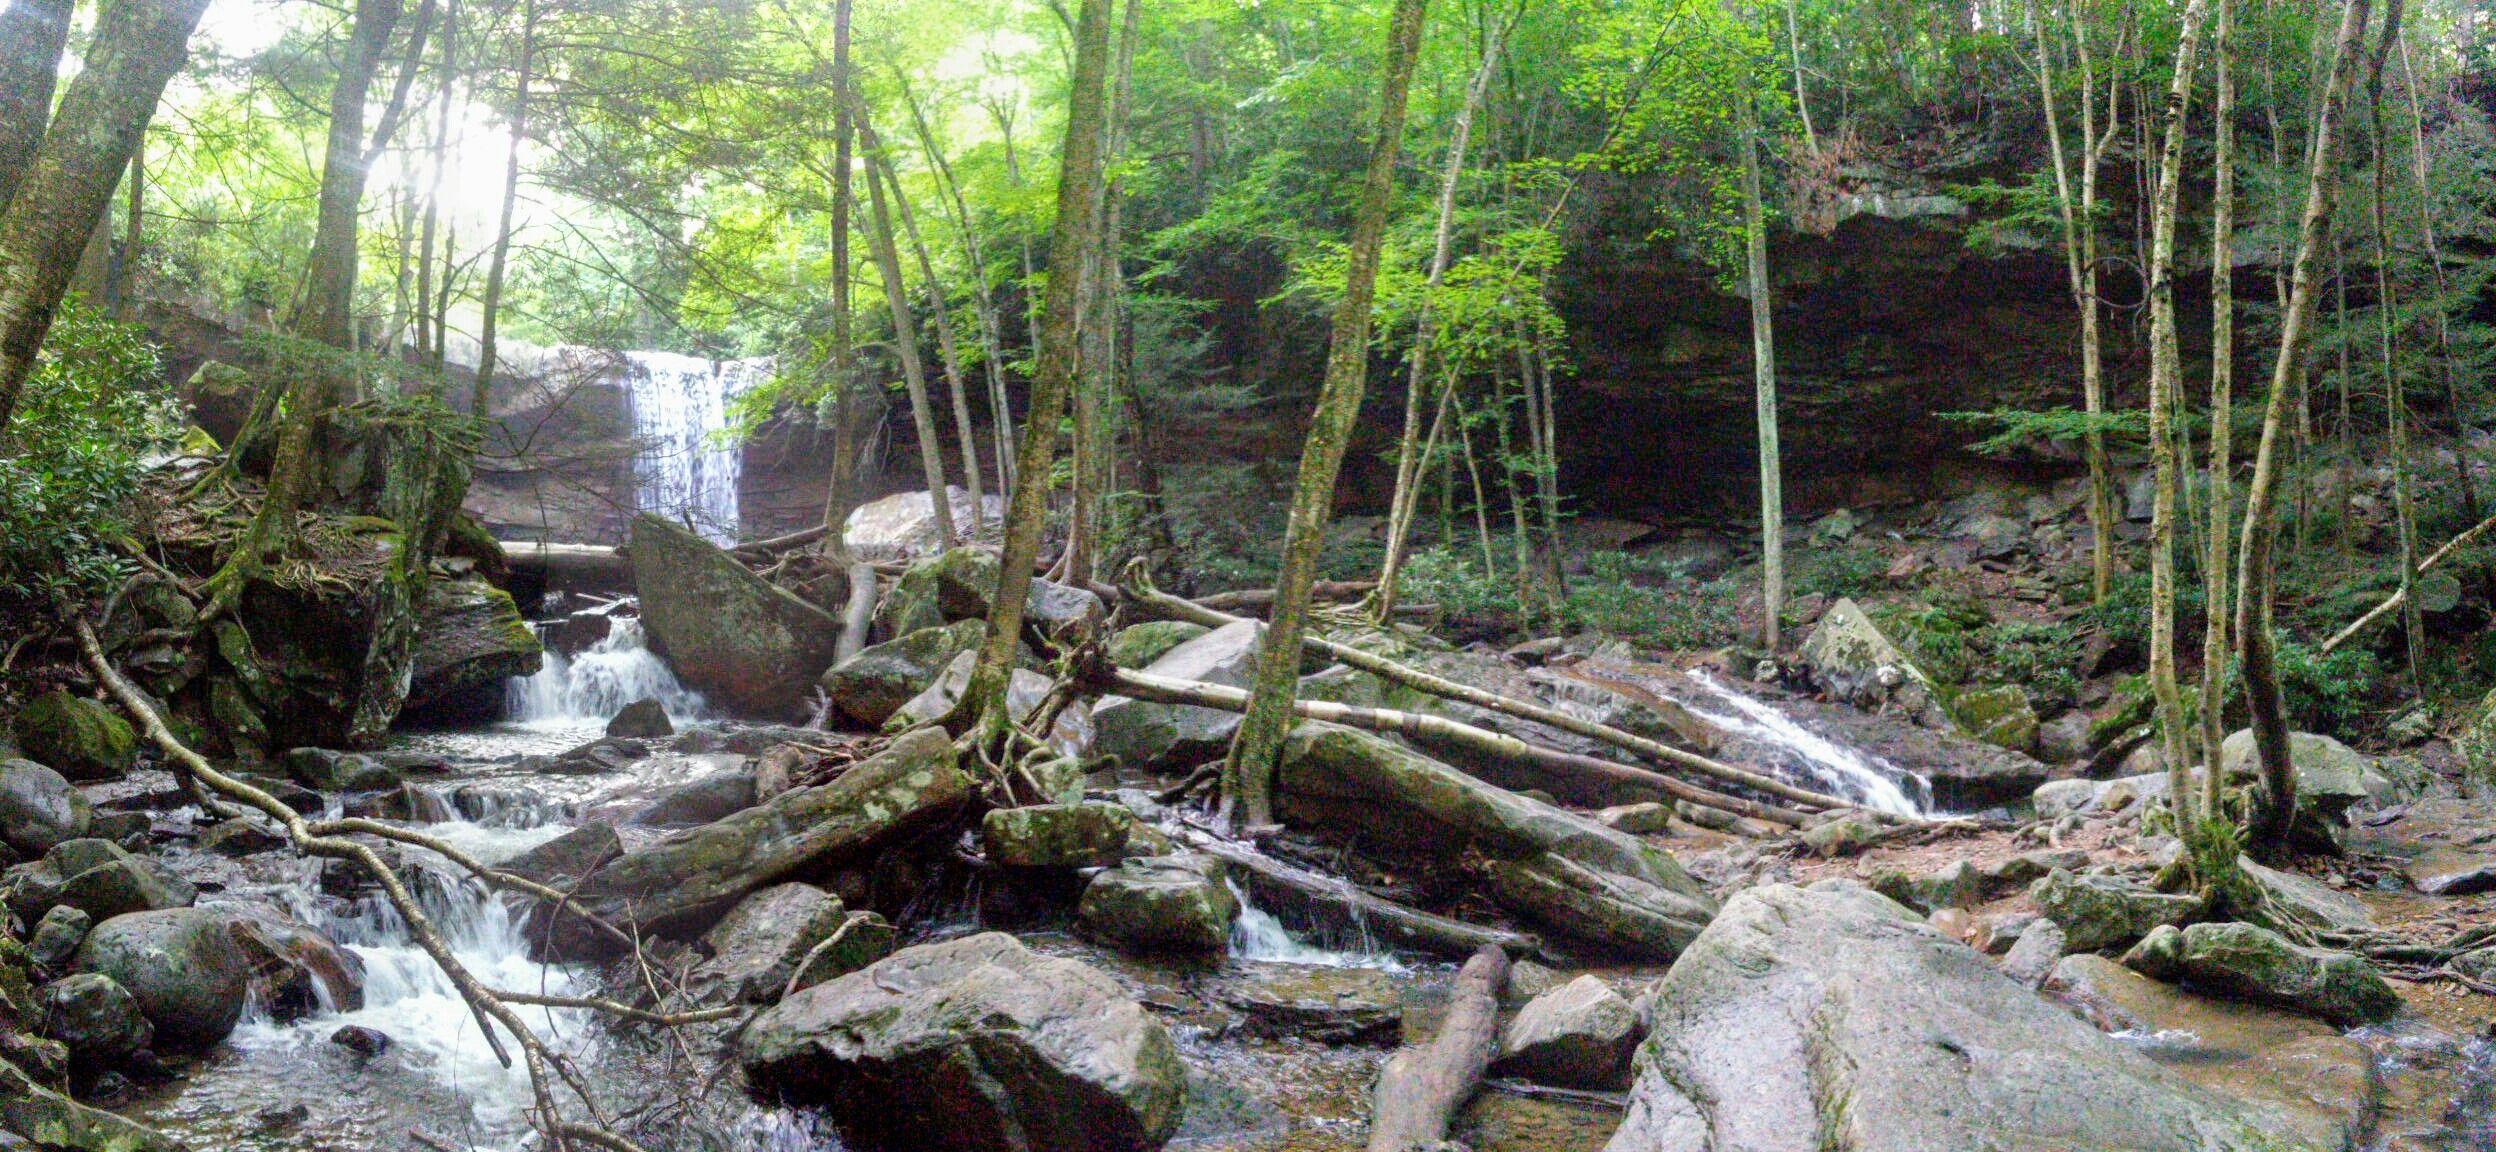 Cucumber falls ohiopyle vacation outdoor waterfall